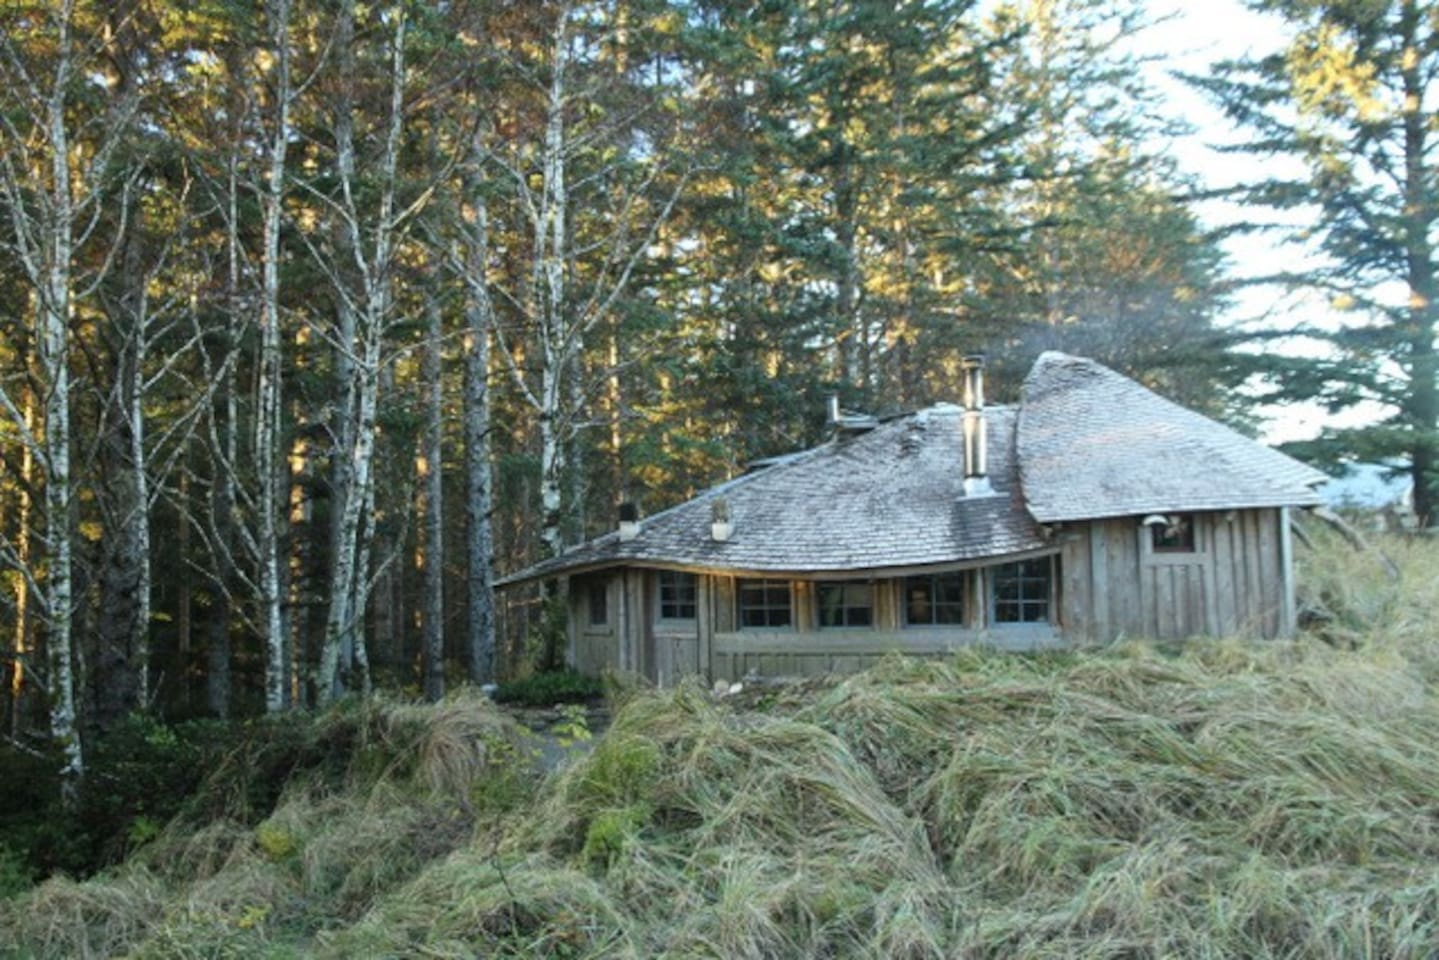 Sheltered by spruce trees and nestled into the sand dune.